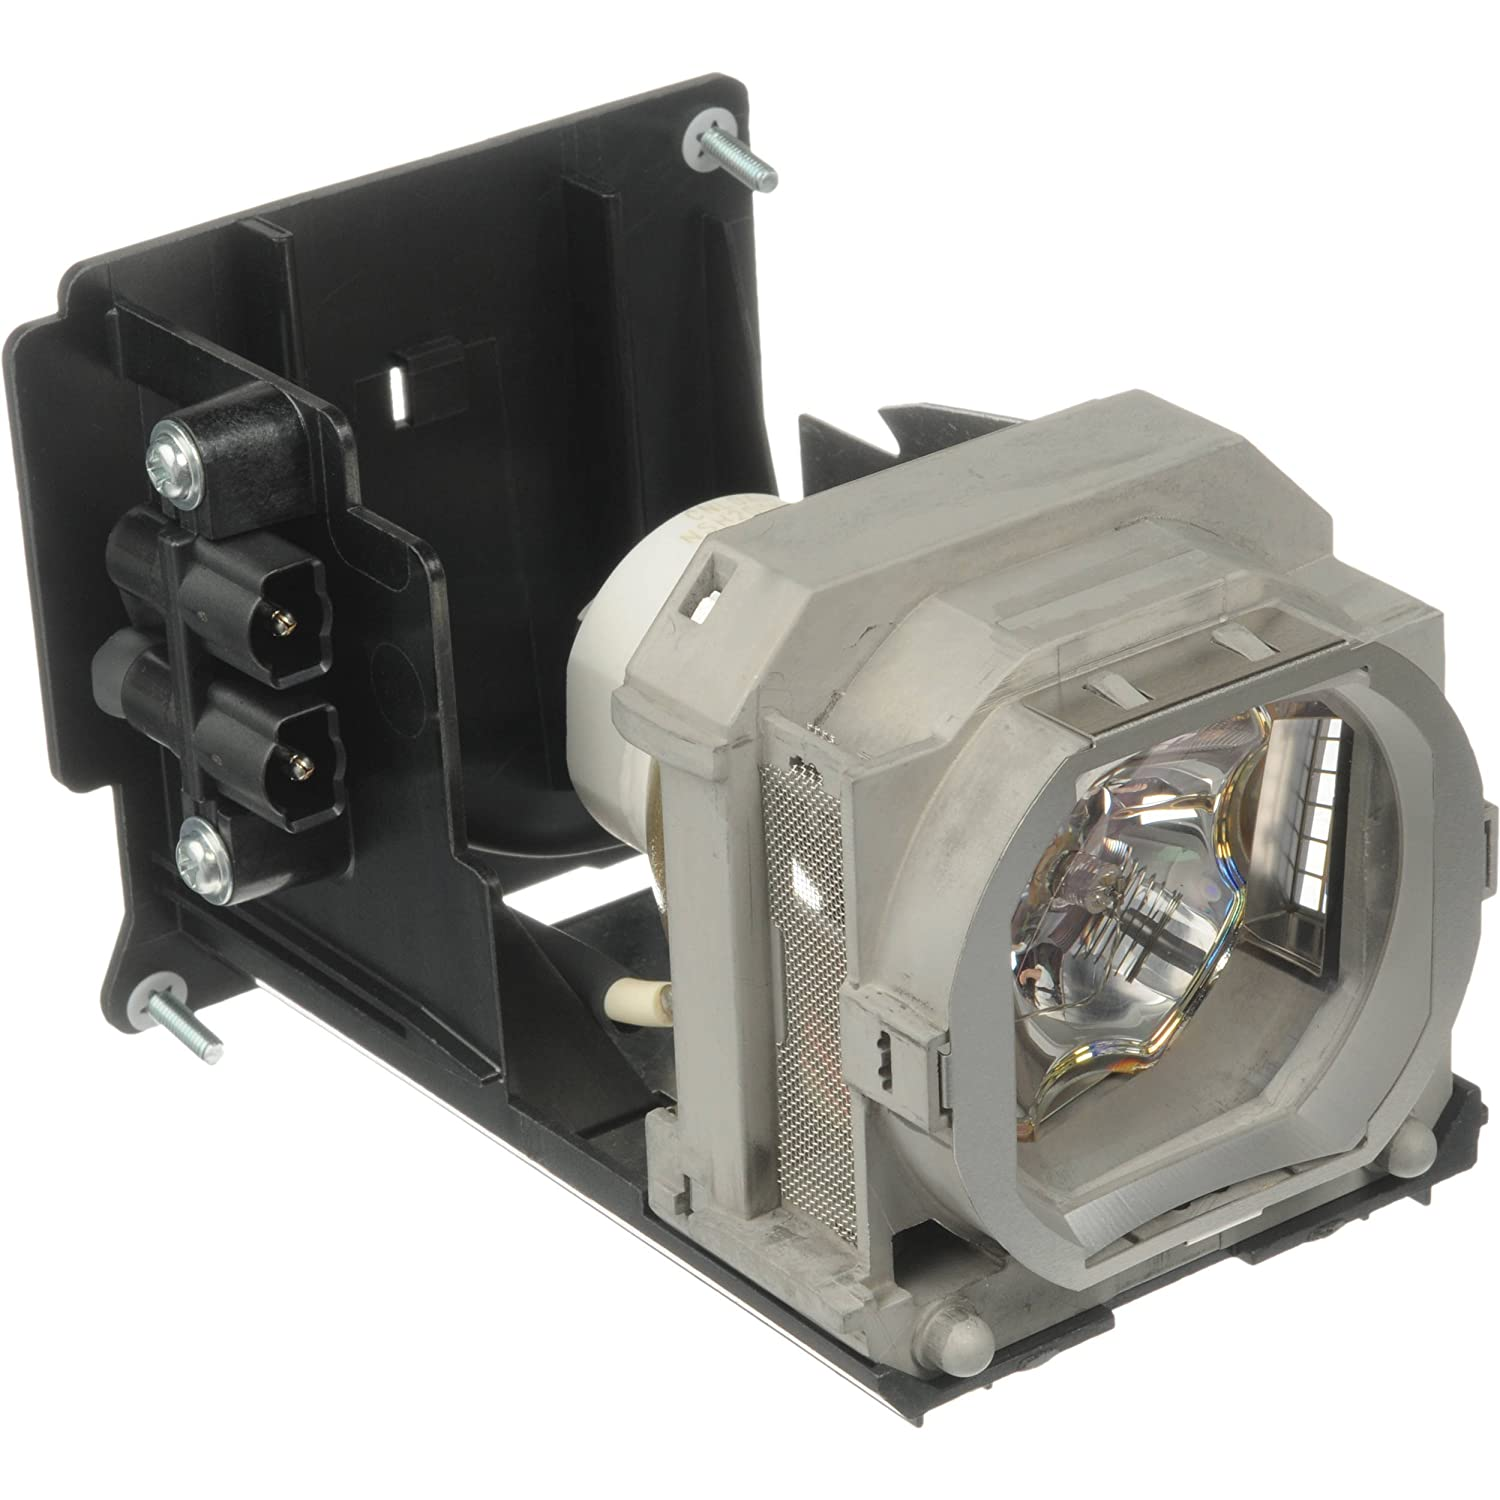 Projector Lamp Assembly with Genuine Original Philips UHP Bulb inside. PLCXU21 Sanyo Projector Lamp Replacement